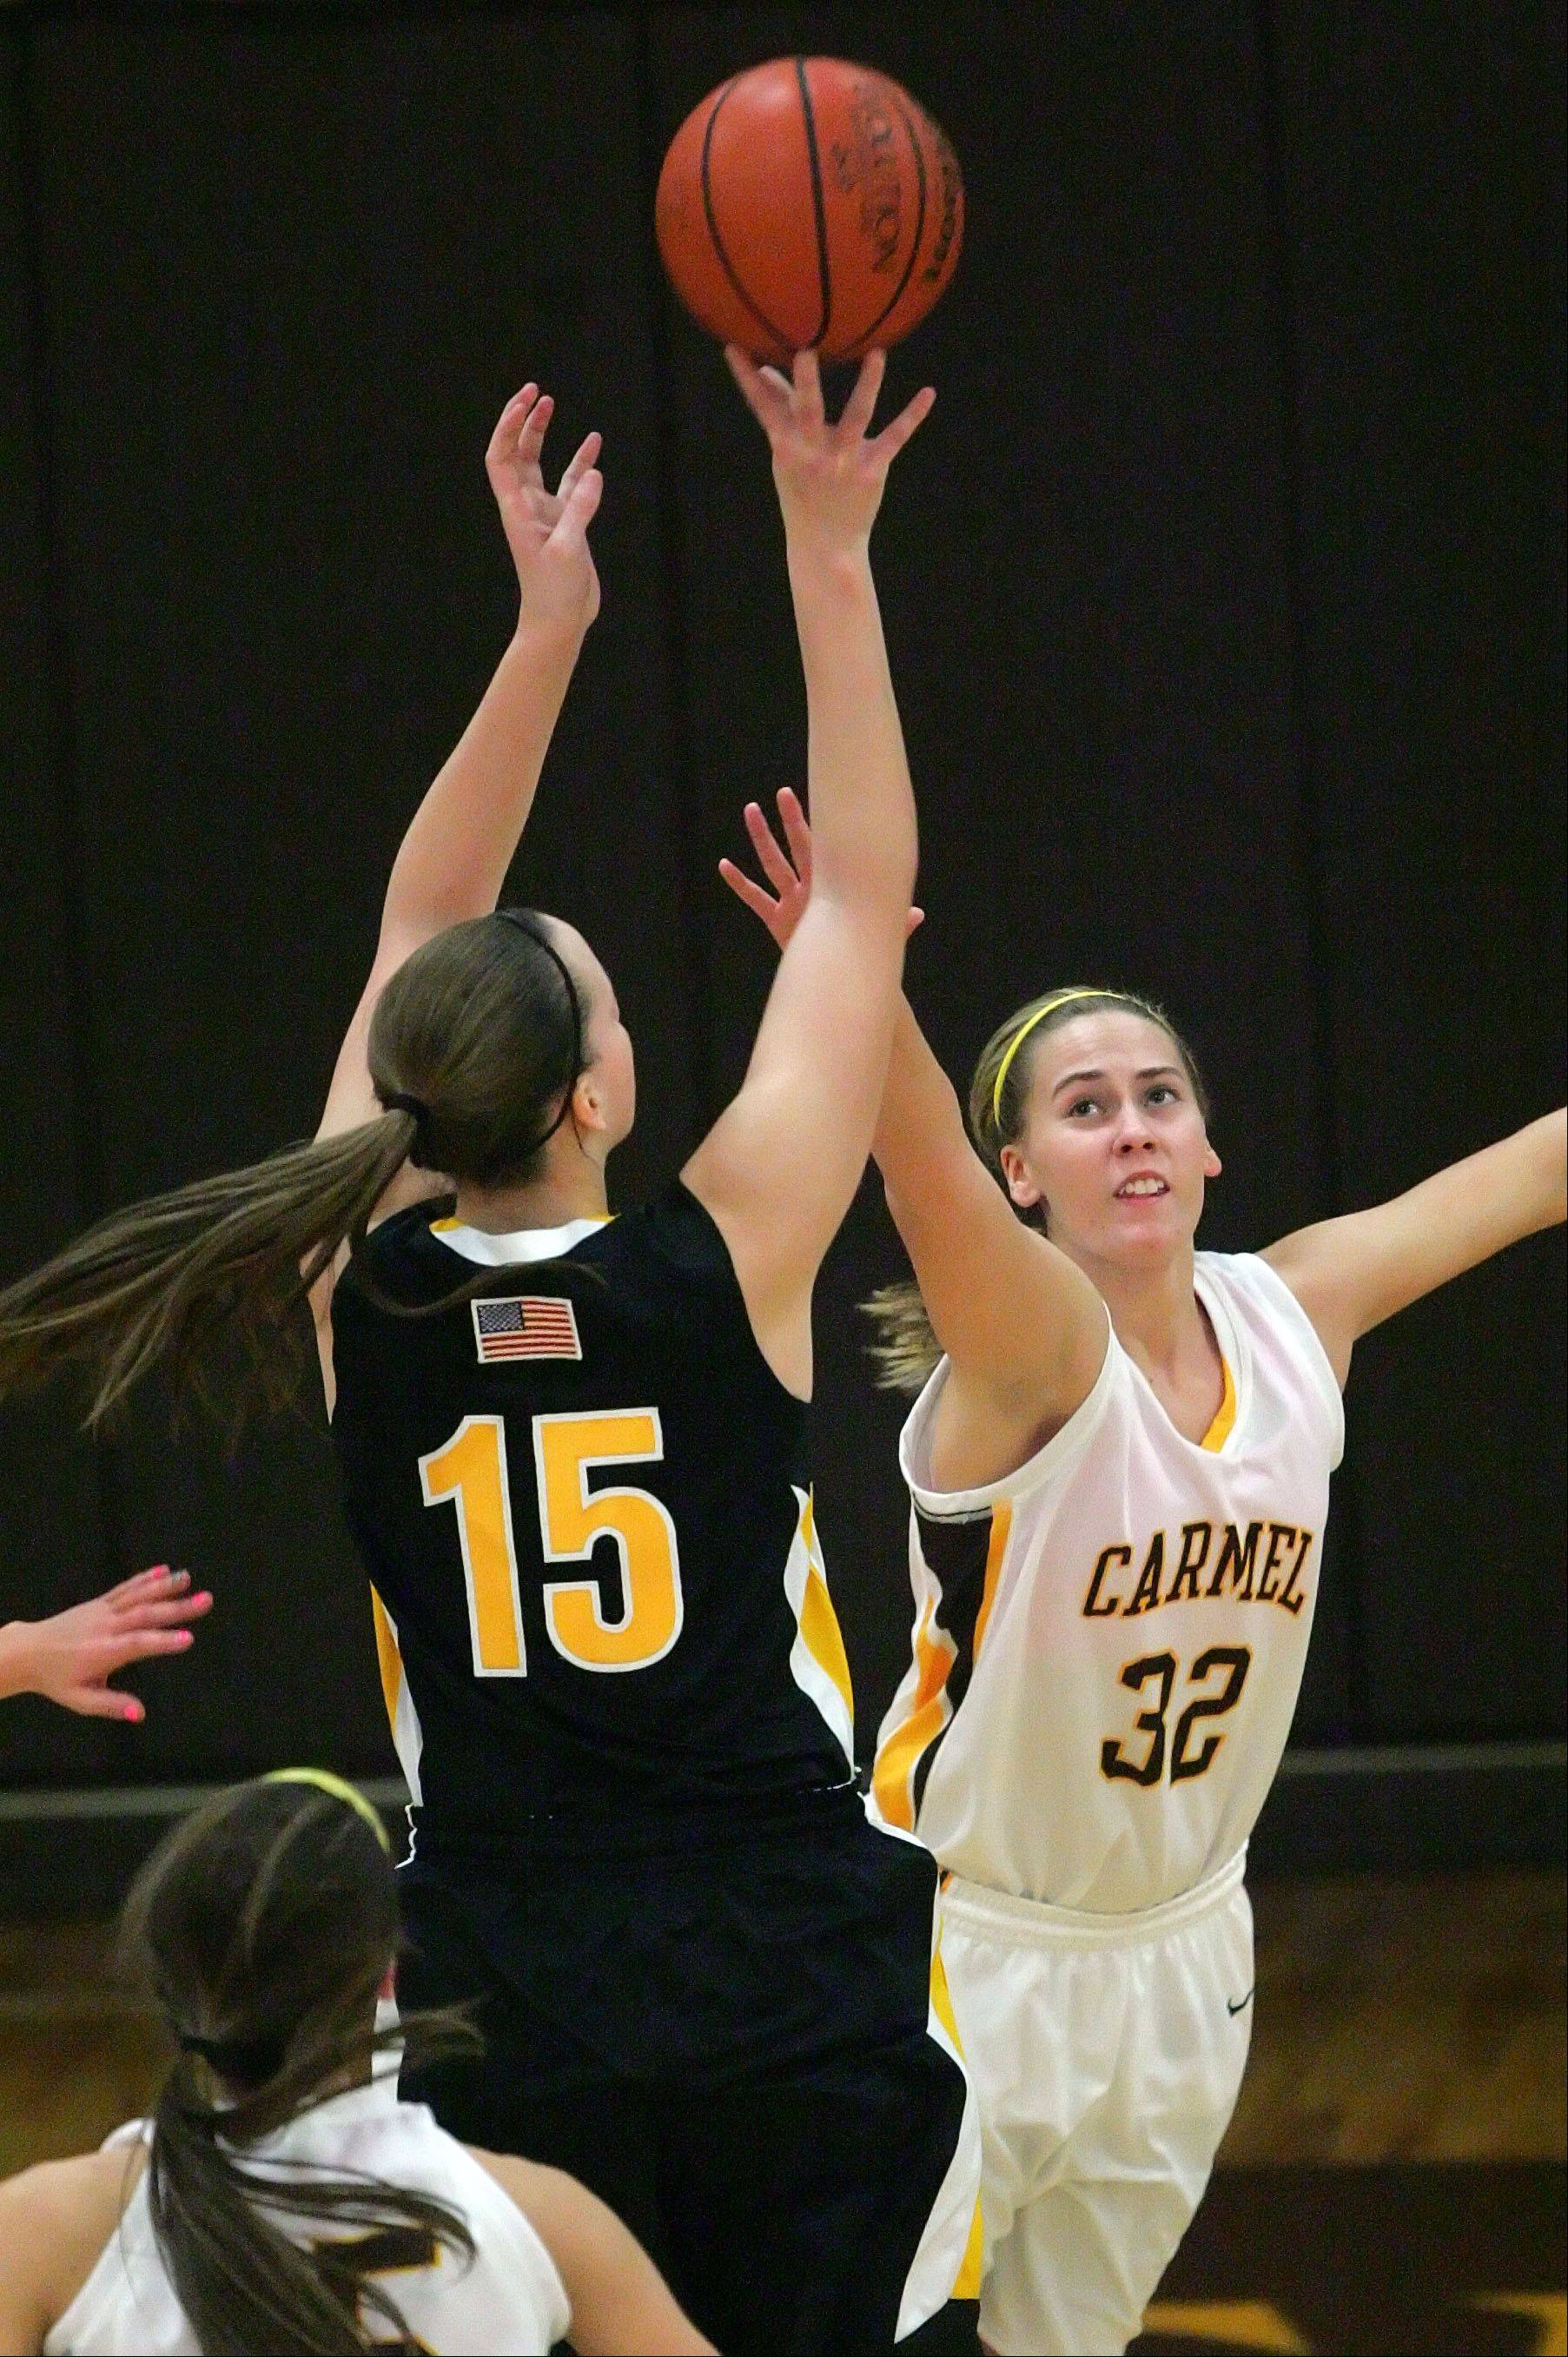 Carmel Catholic's Emma Rappe, right, defends against Marian Catholic's Megan Walsh on Wednesday night at Carmel Catholic.